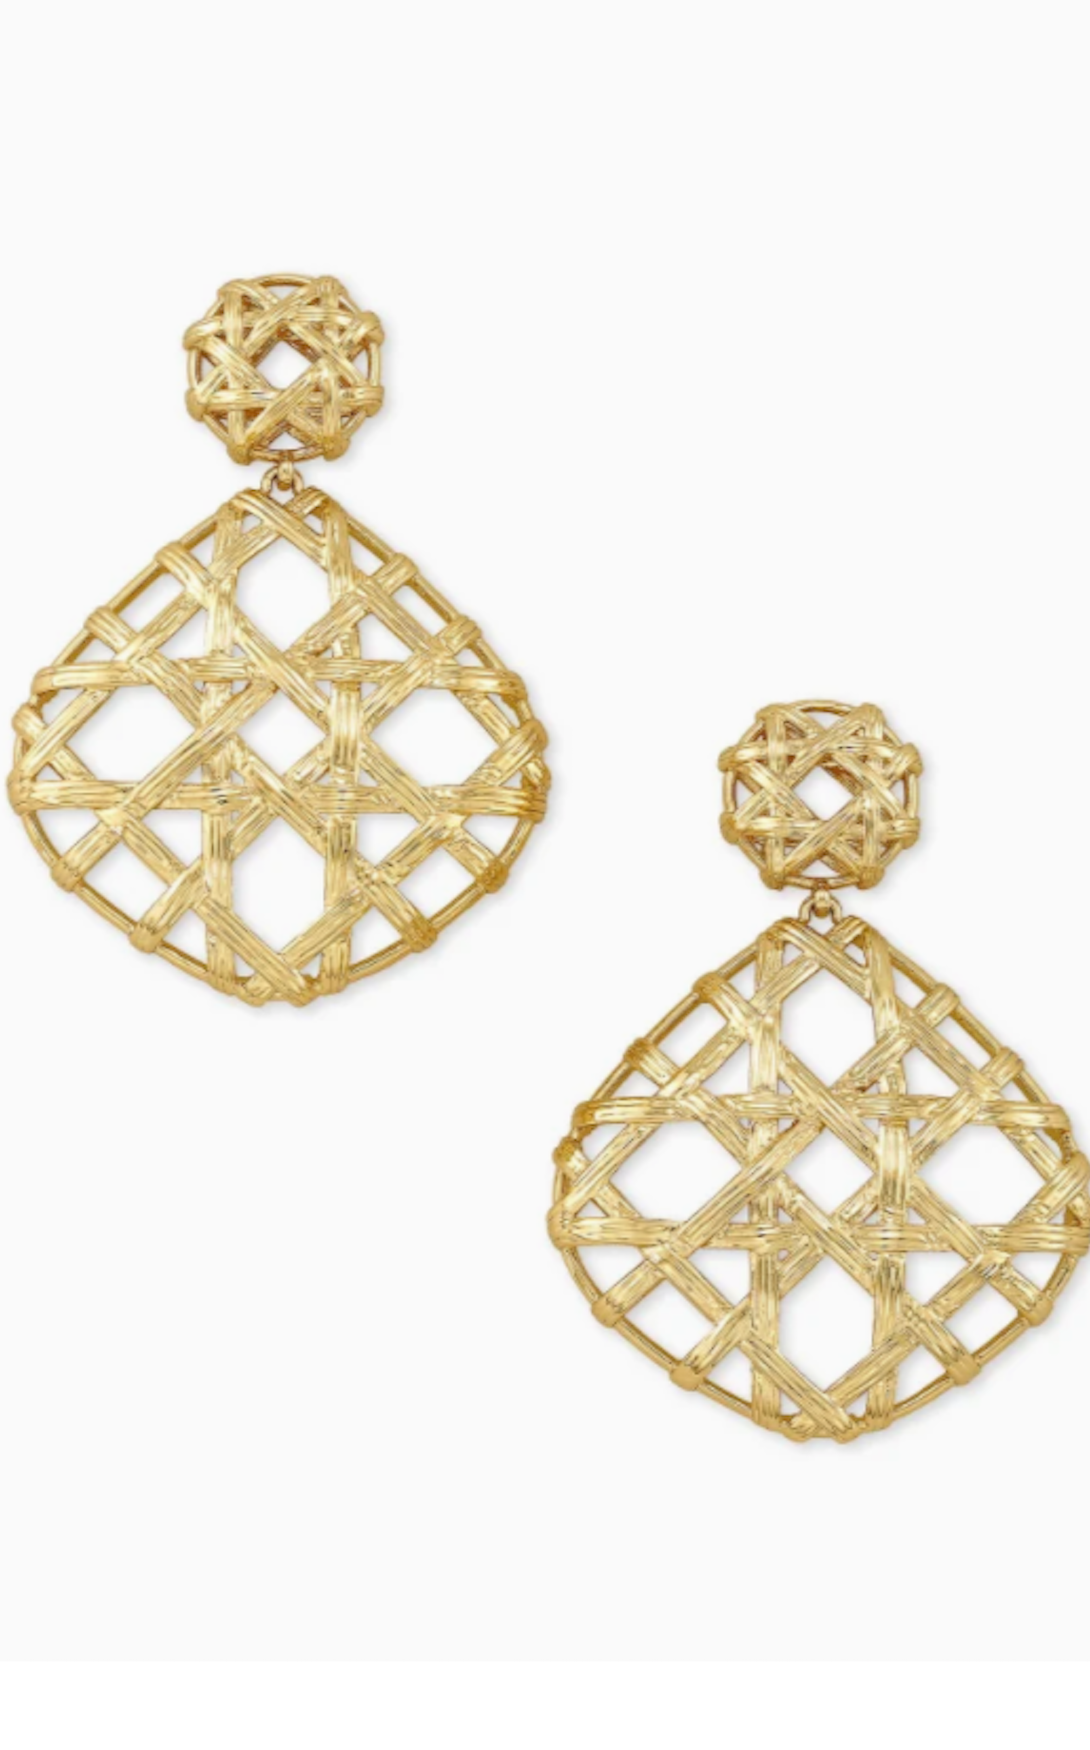 Natalie Gold Statement Earrings - Gold